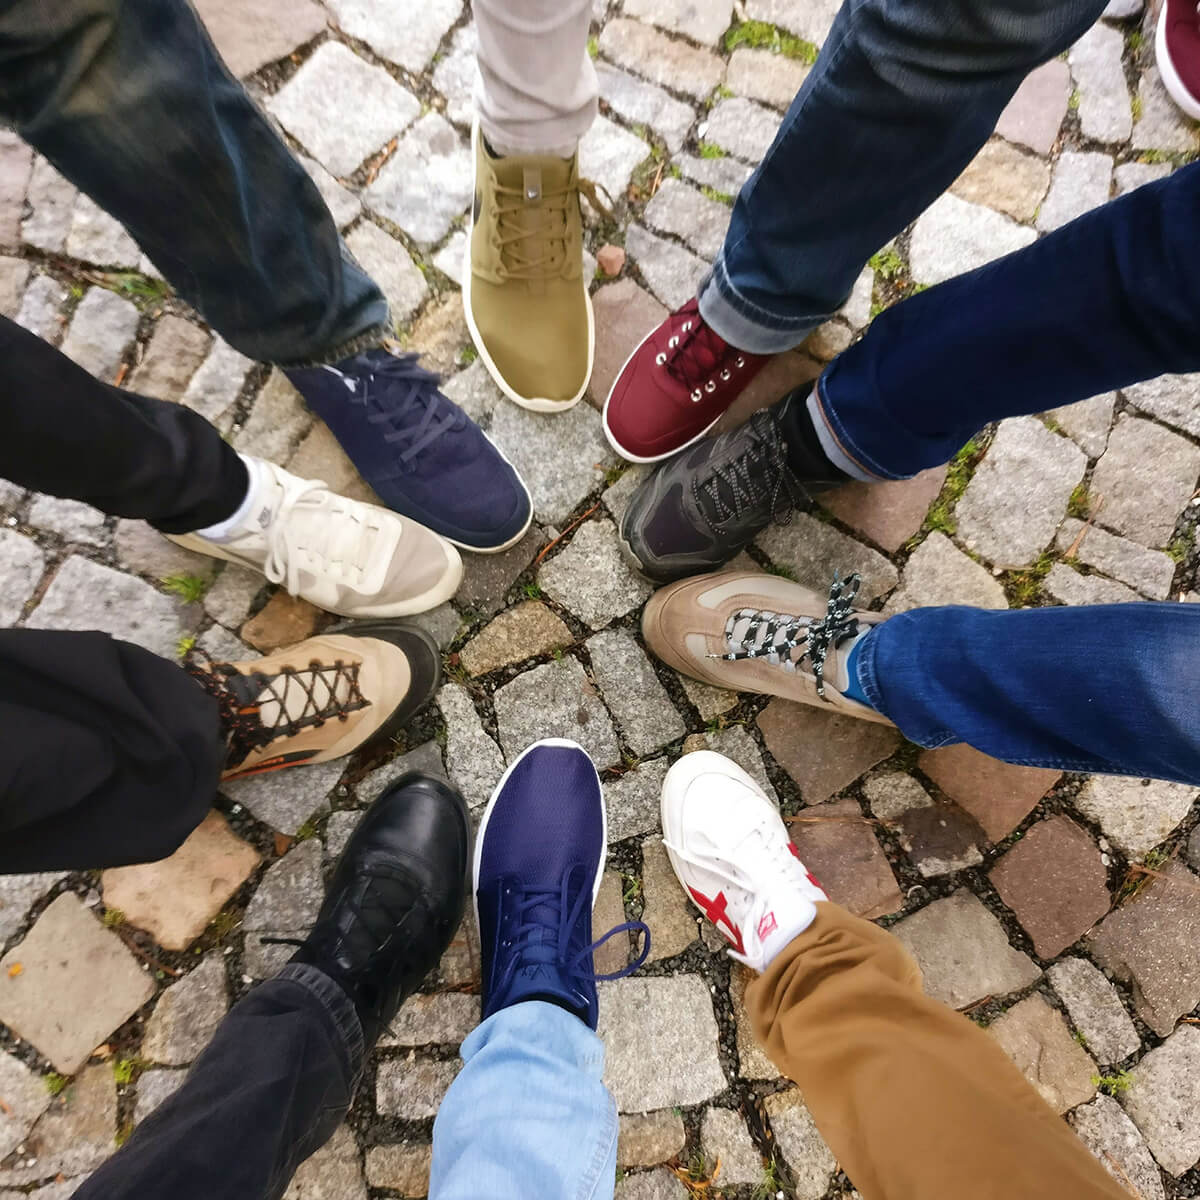 circle of people with their feet together